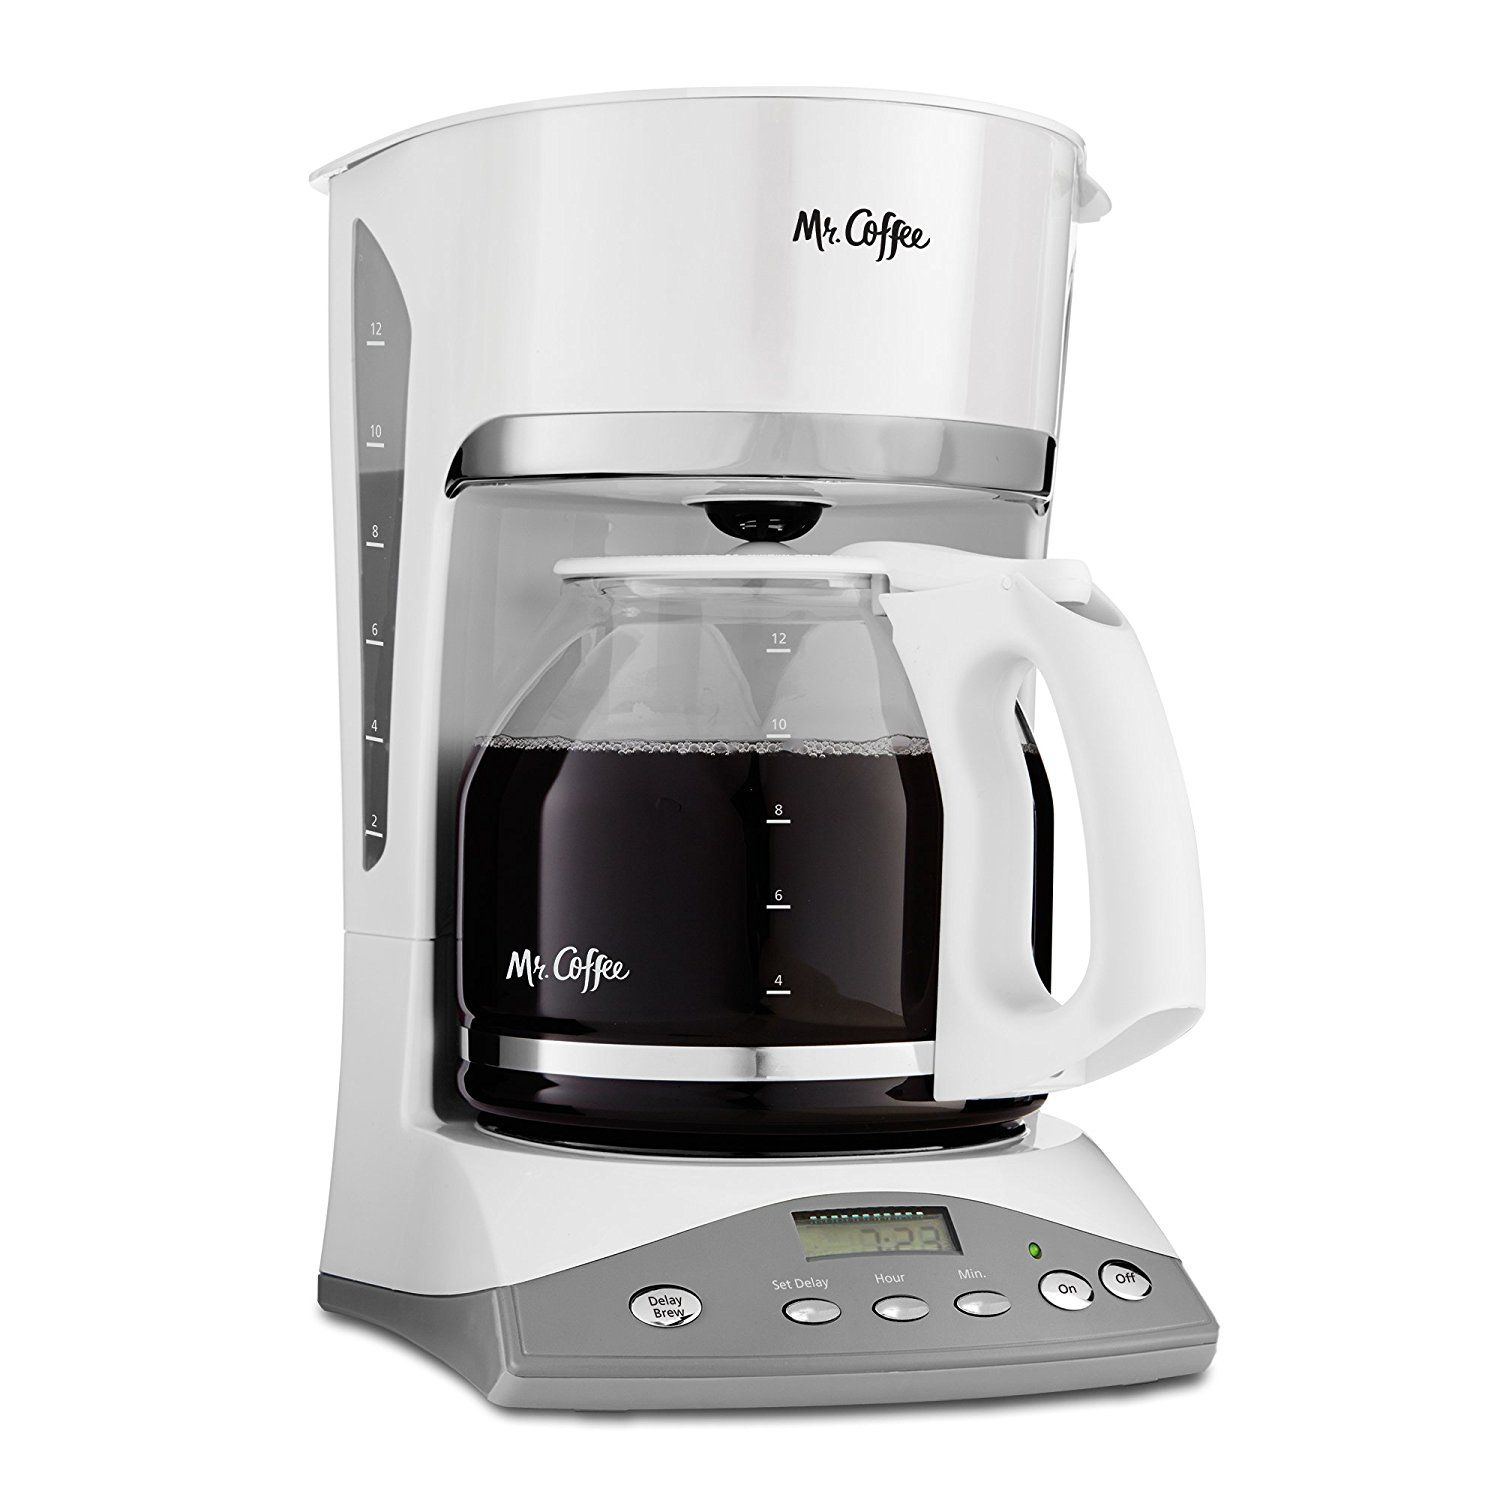 Mr. Coffee 12Cup Programmable Coffee Maker